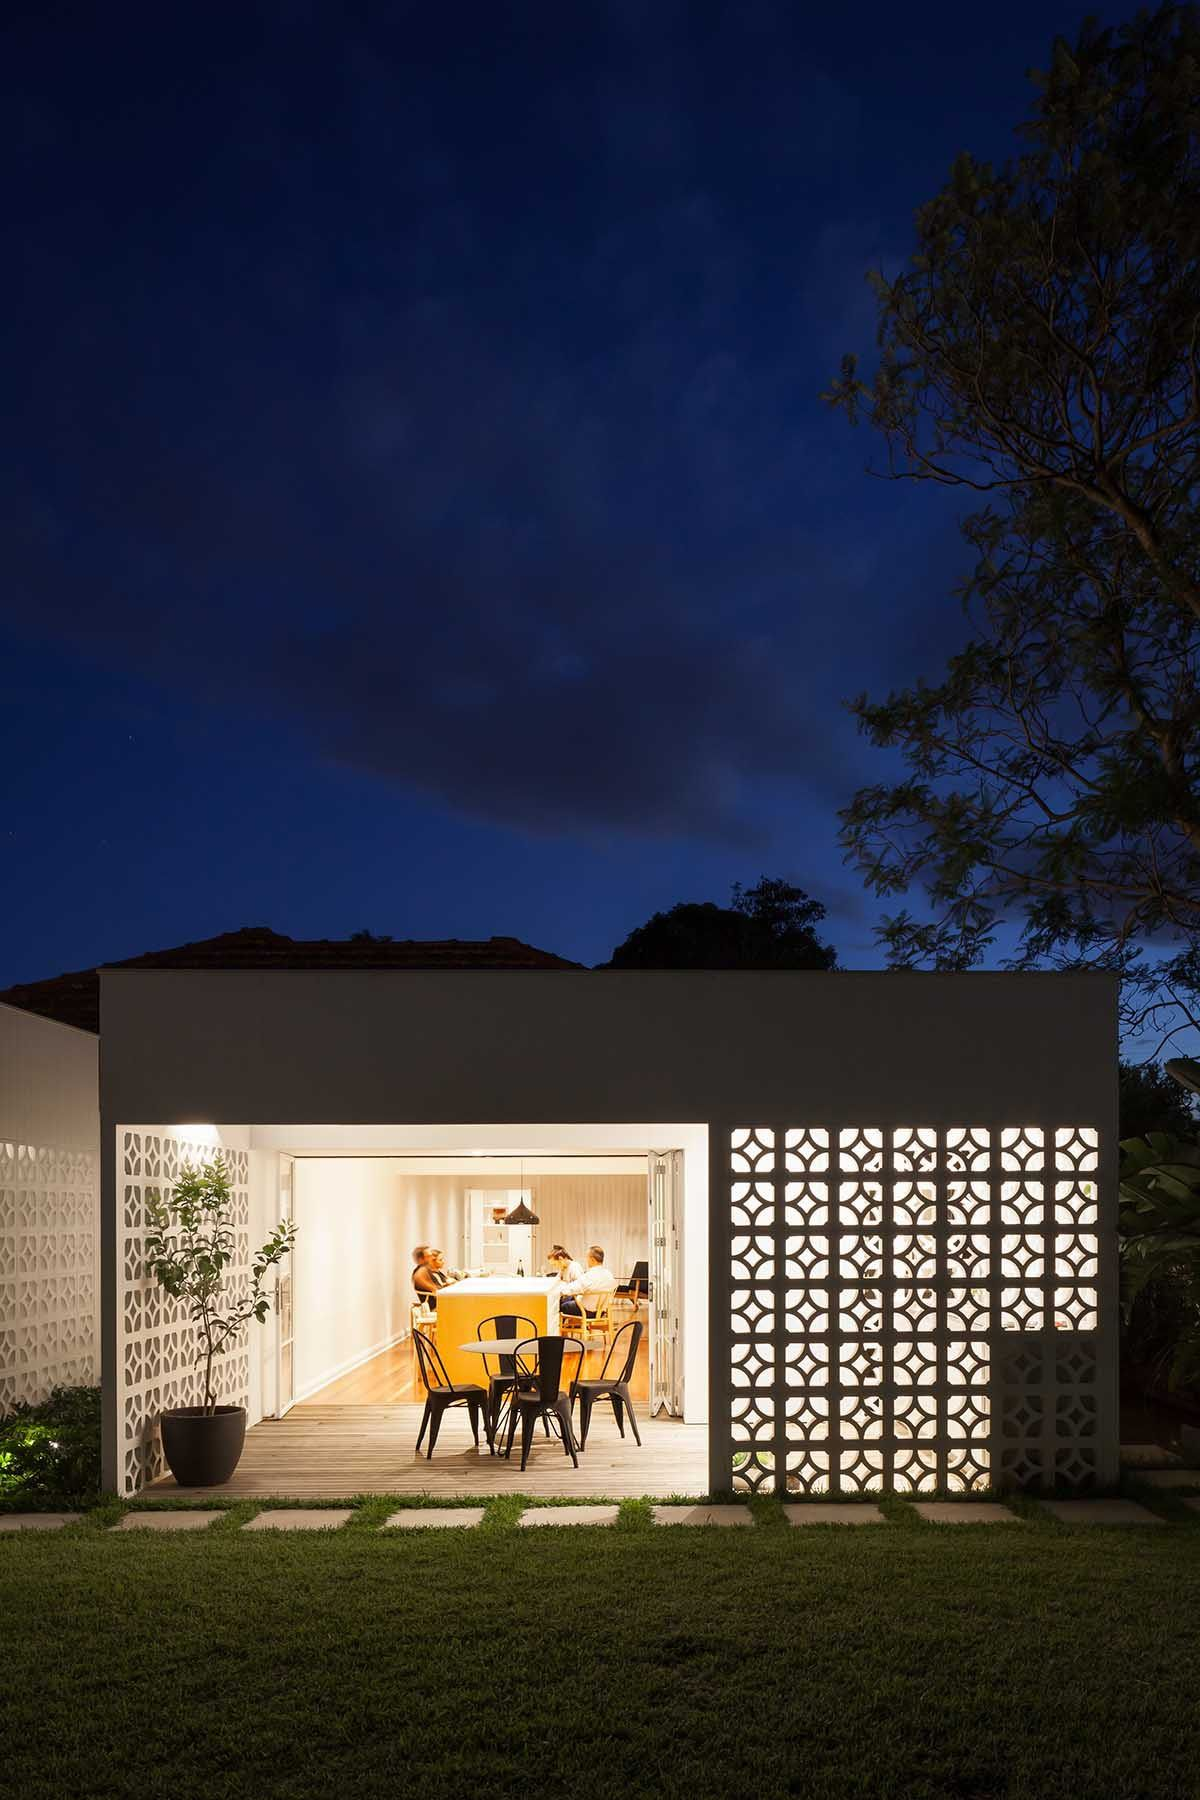 Lovely lighting illuminates the interior of the house while showcasing its best features